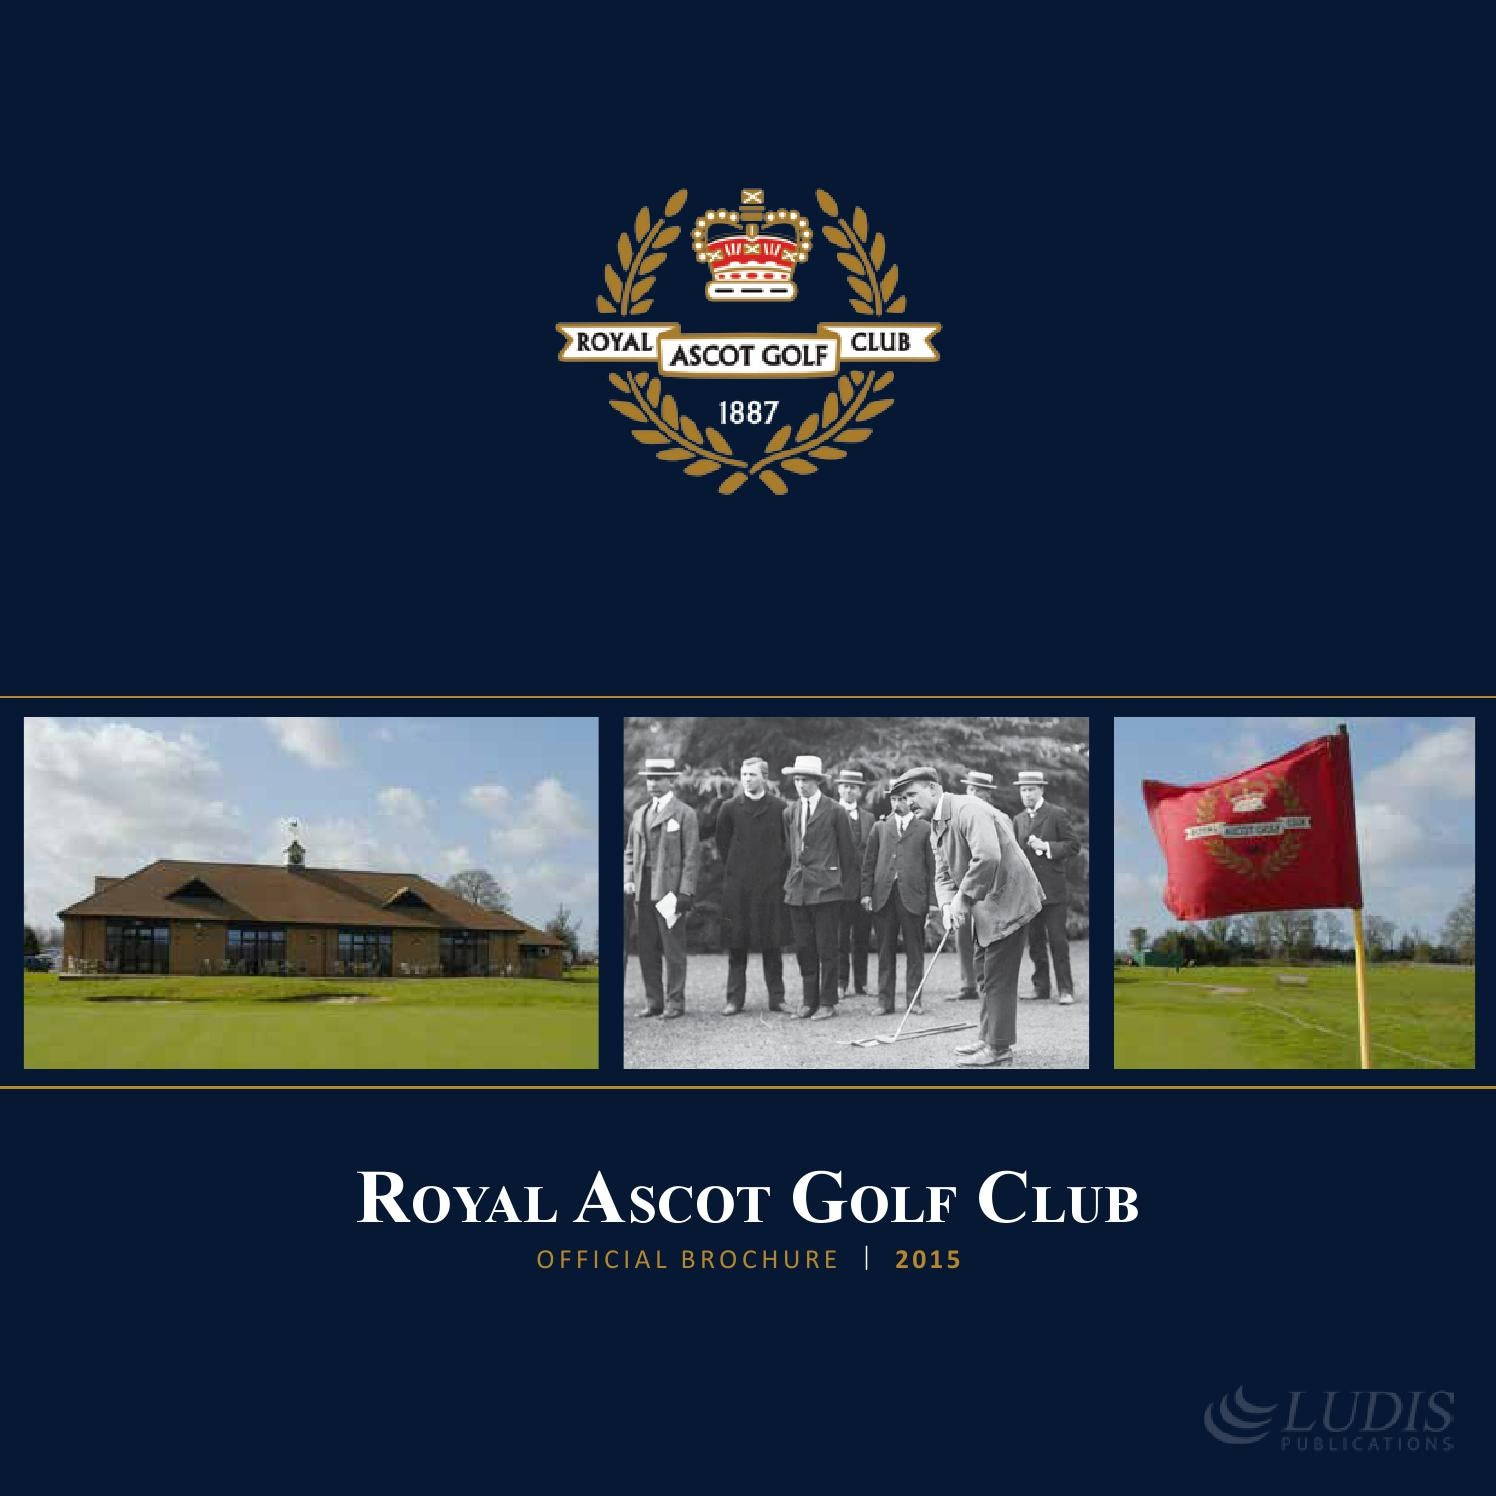 Royal Ascot Golf Club Official Brochure 2015 By Ludis Group Issuu